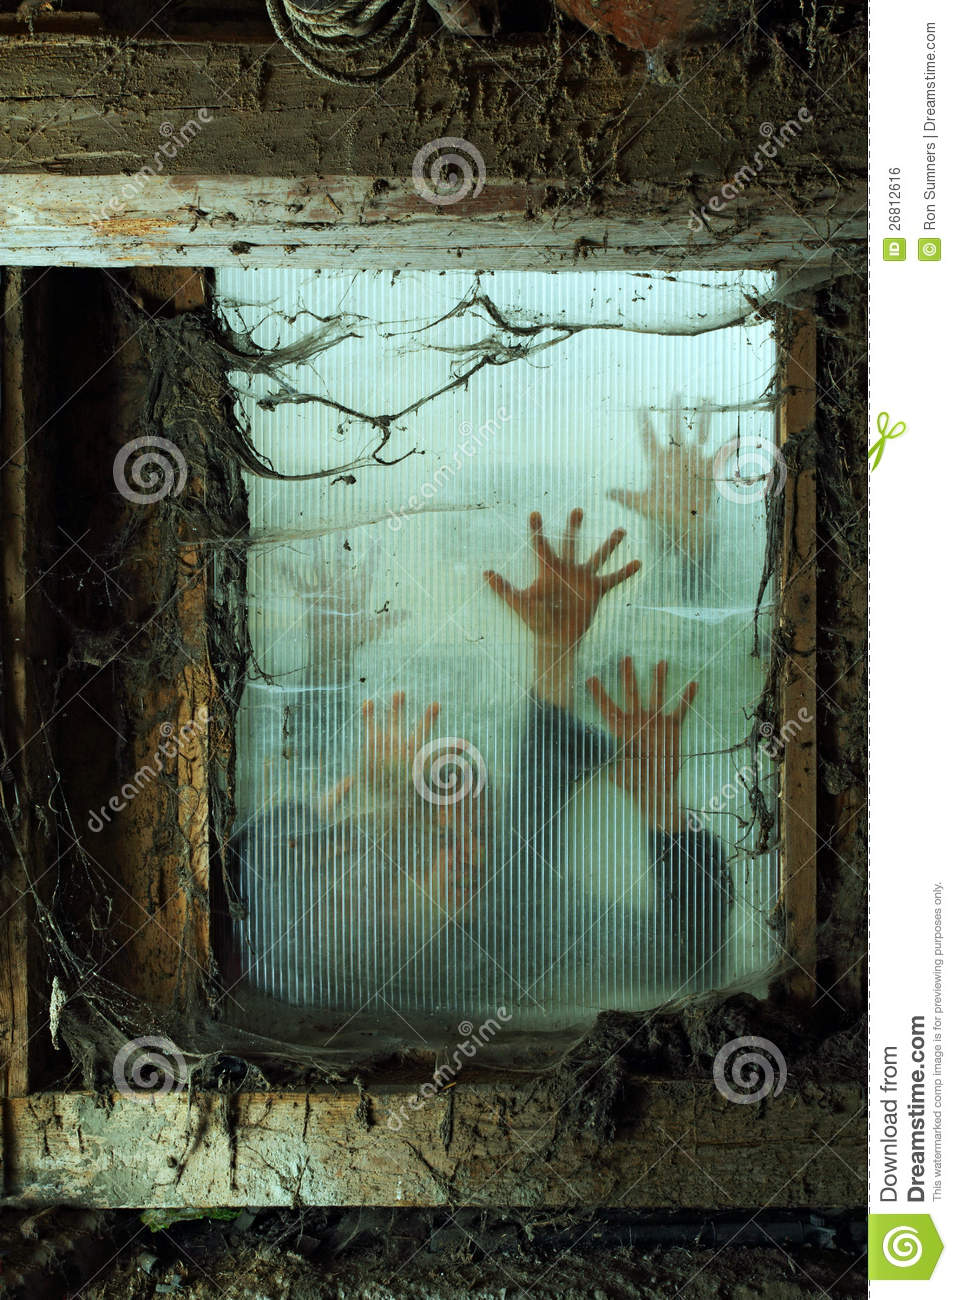 Zombies outside a window stock photo Image of cobweb  26812616